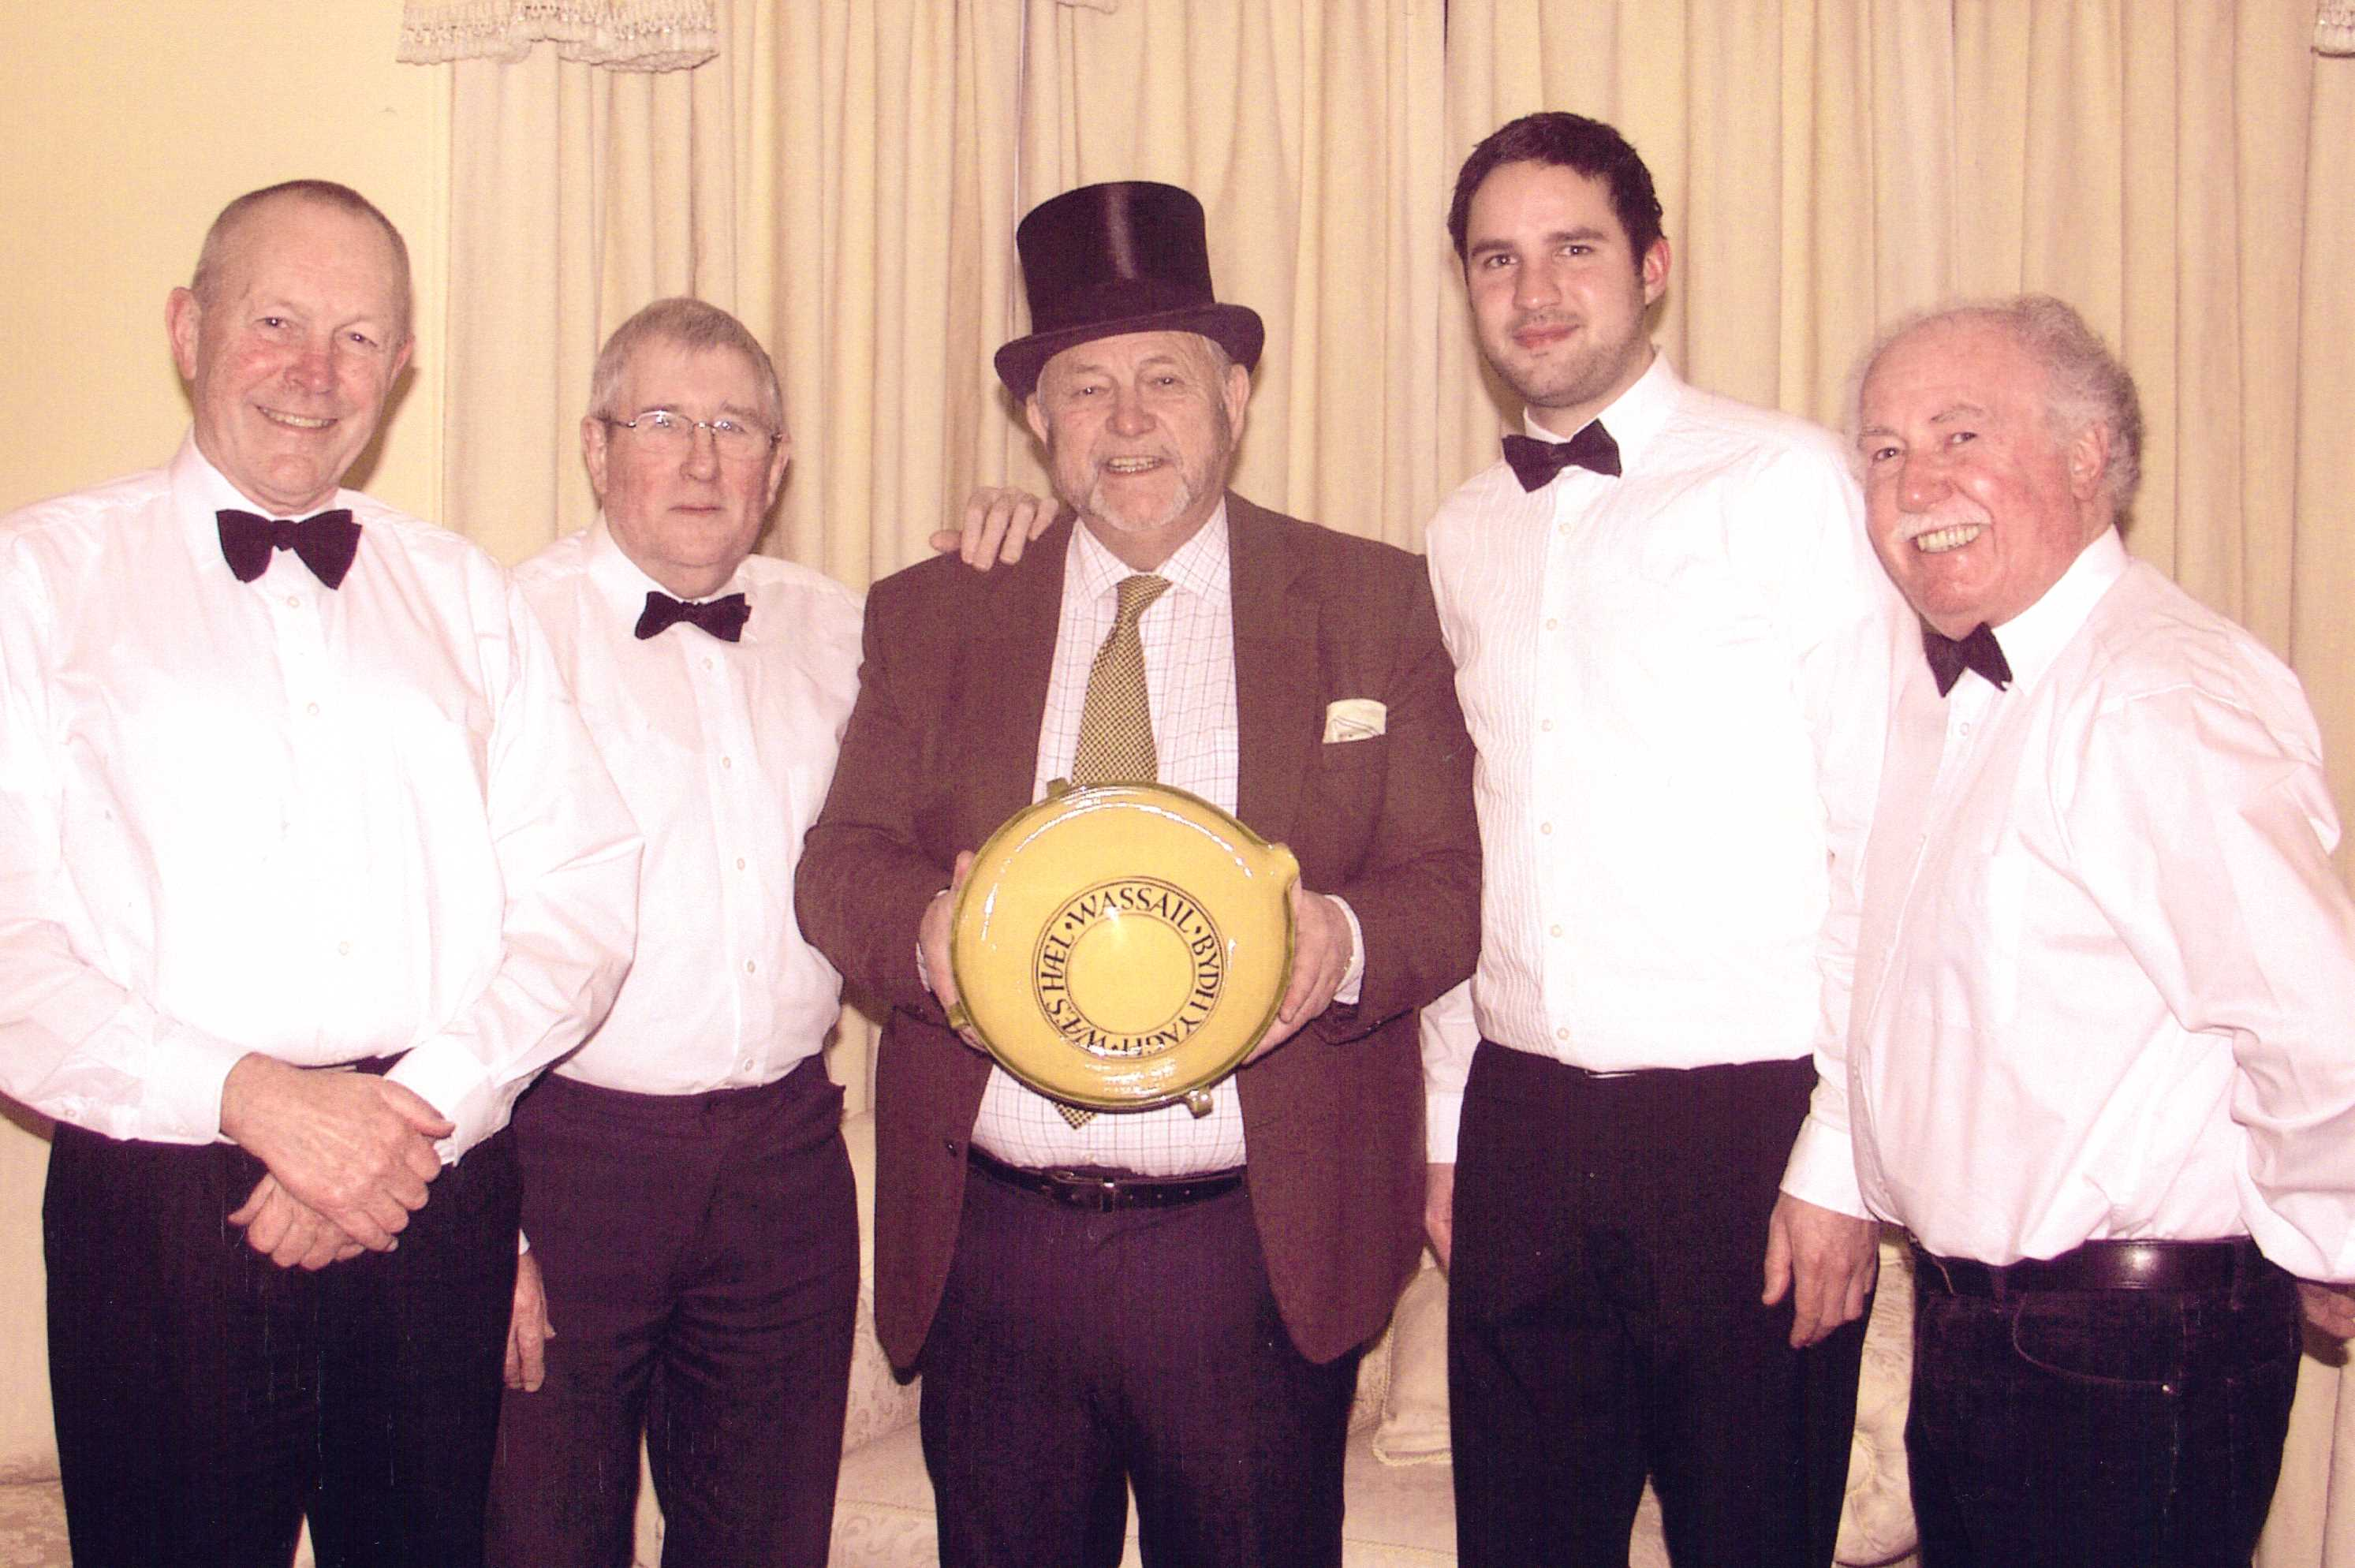 With new Wassail Bowl, 2008